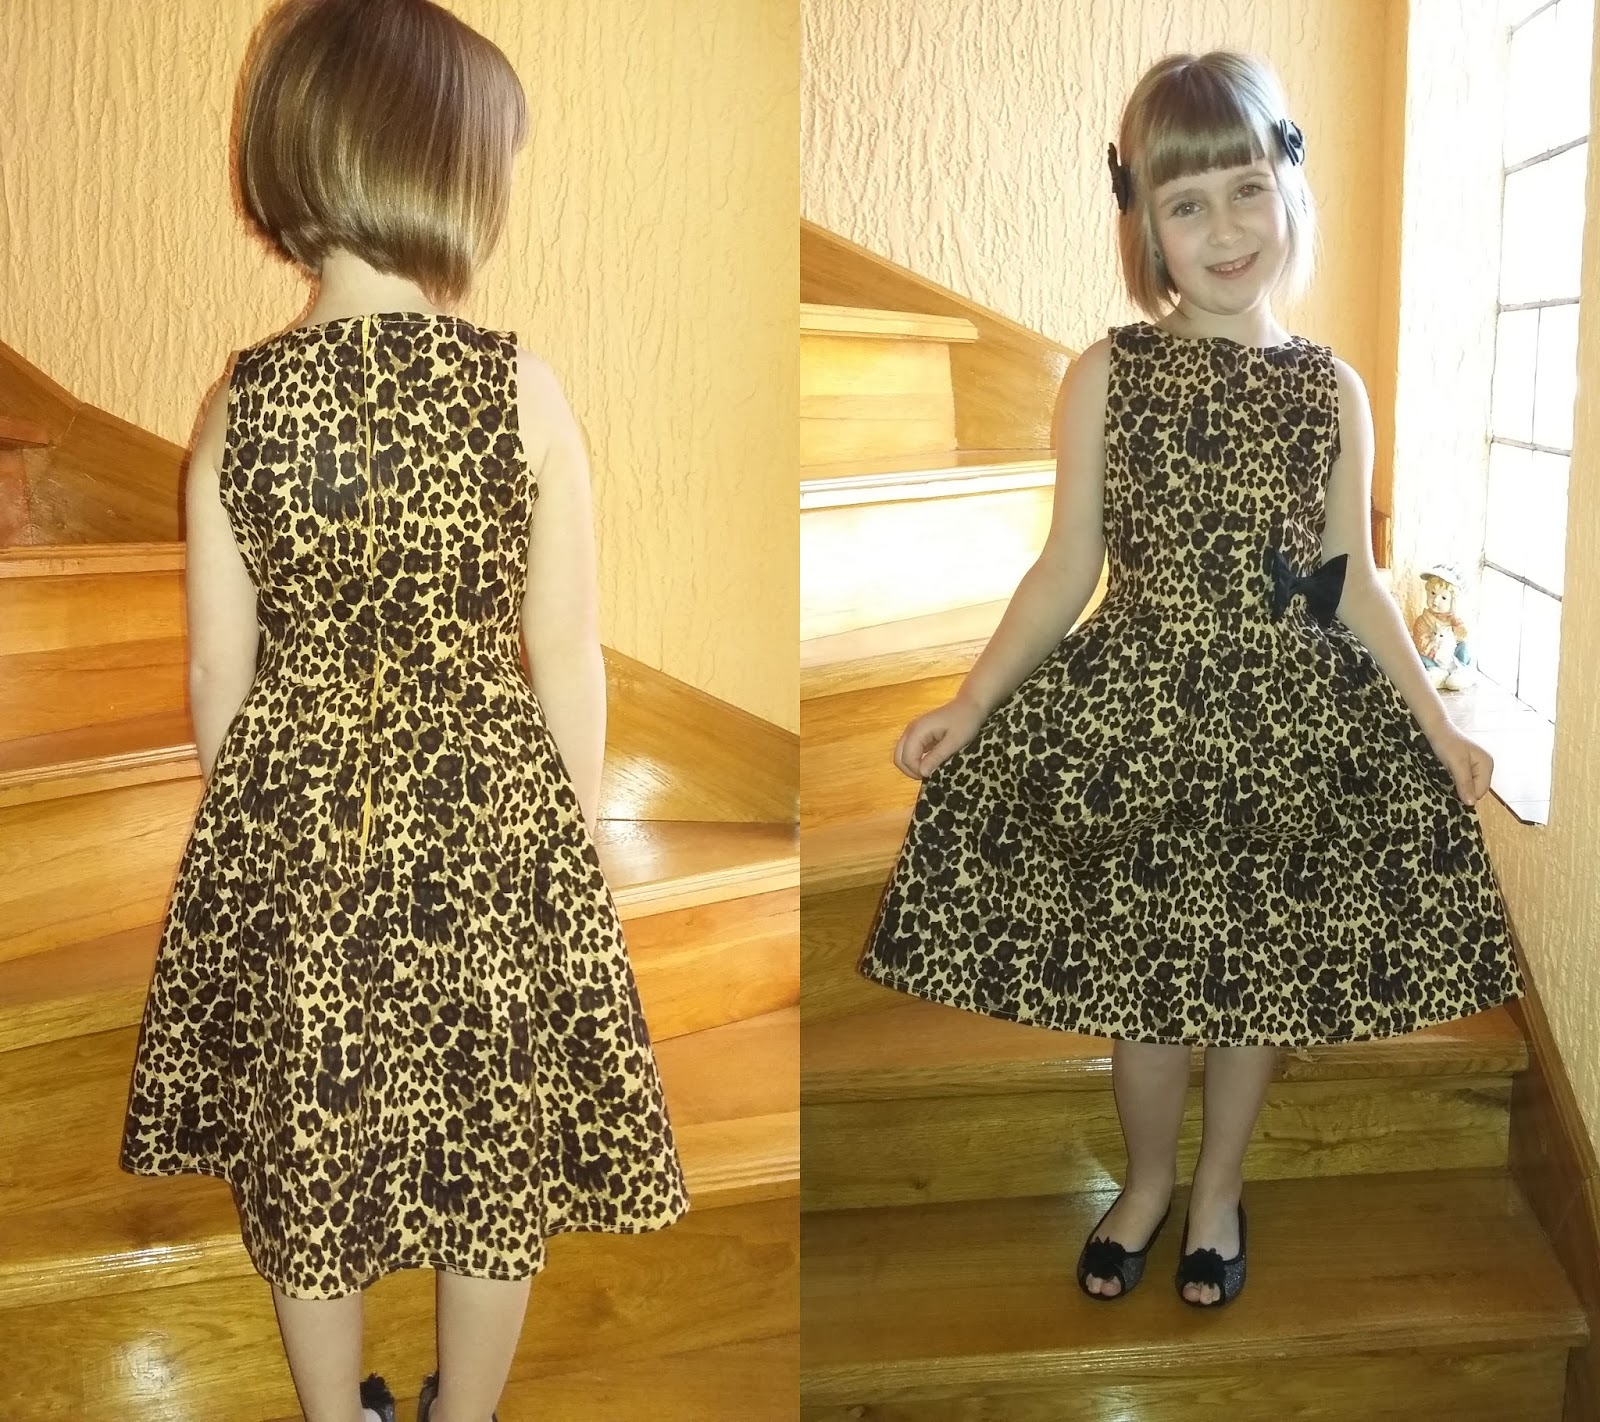 It Is Made Out Of Good Quality Medium Weight Stretch Cotton I Would Compare With Lindy Bop Wendy Or Ola Dress